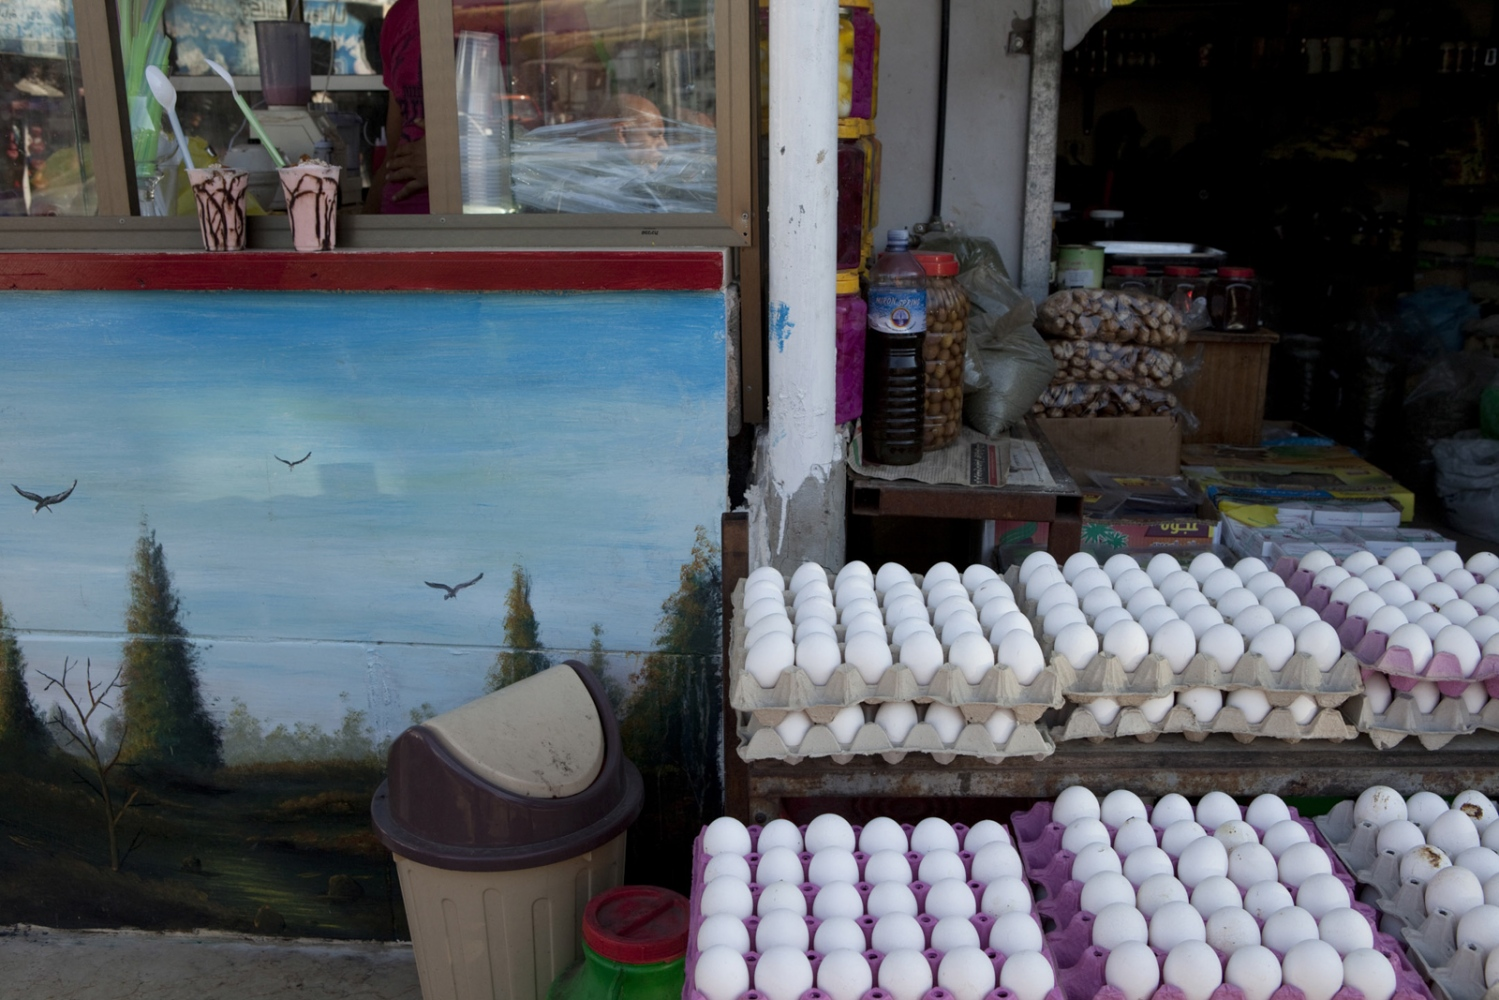 The Palestinian village of Barta'a is bisected by the Green Line, but sits 5 km on the Israeli side of the Barrier. The milkshake kiosk on the left is Palestinian, and its owners have green ID's, which prevent them from moving into Israel proper. They can however move inside the village, allowing them to buy eggs from the Israeli Arab store on the right.